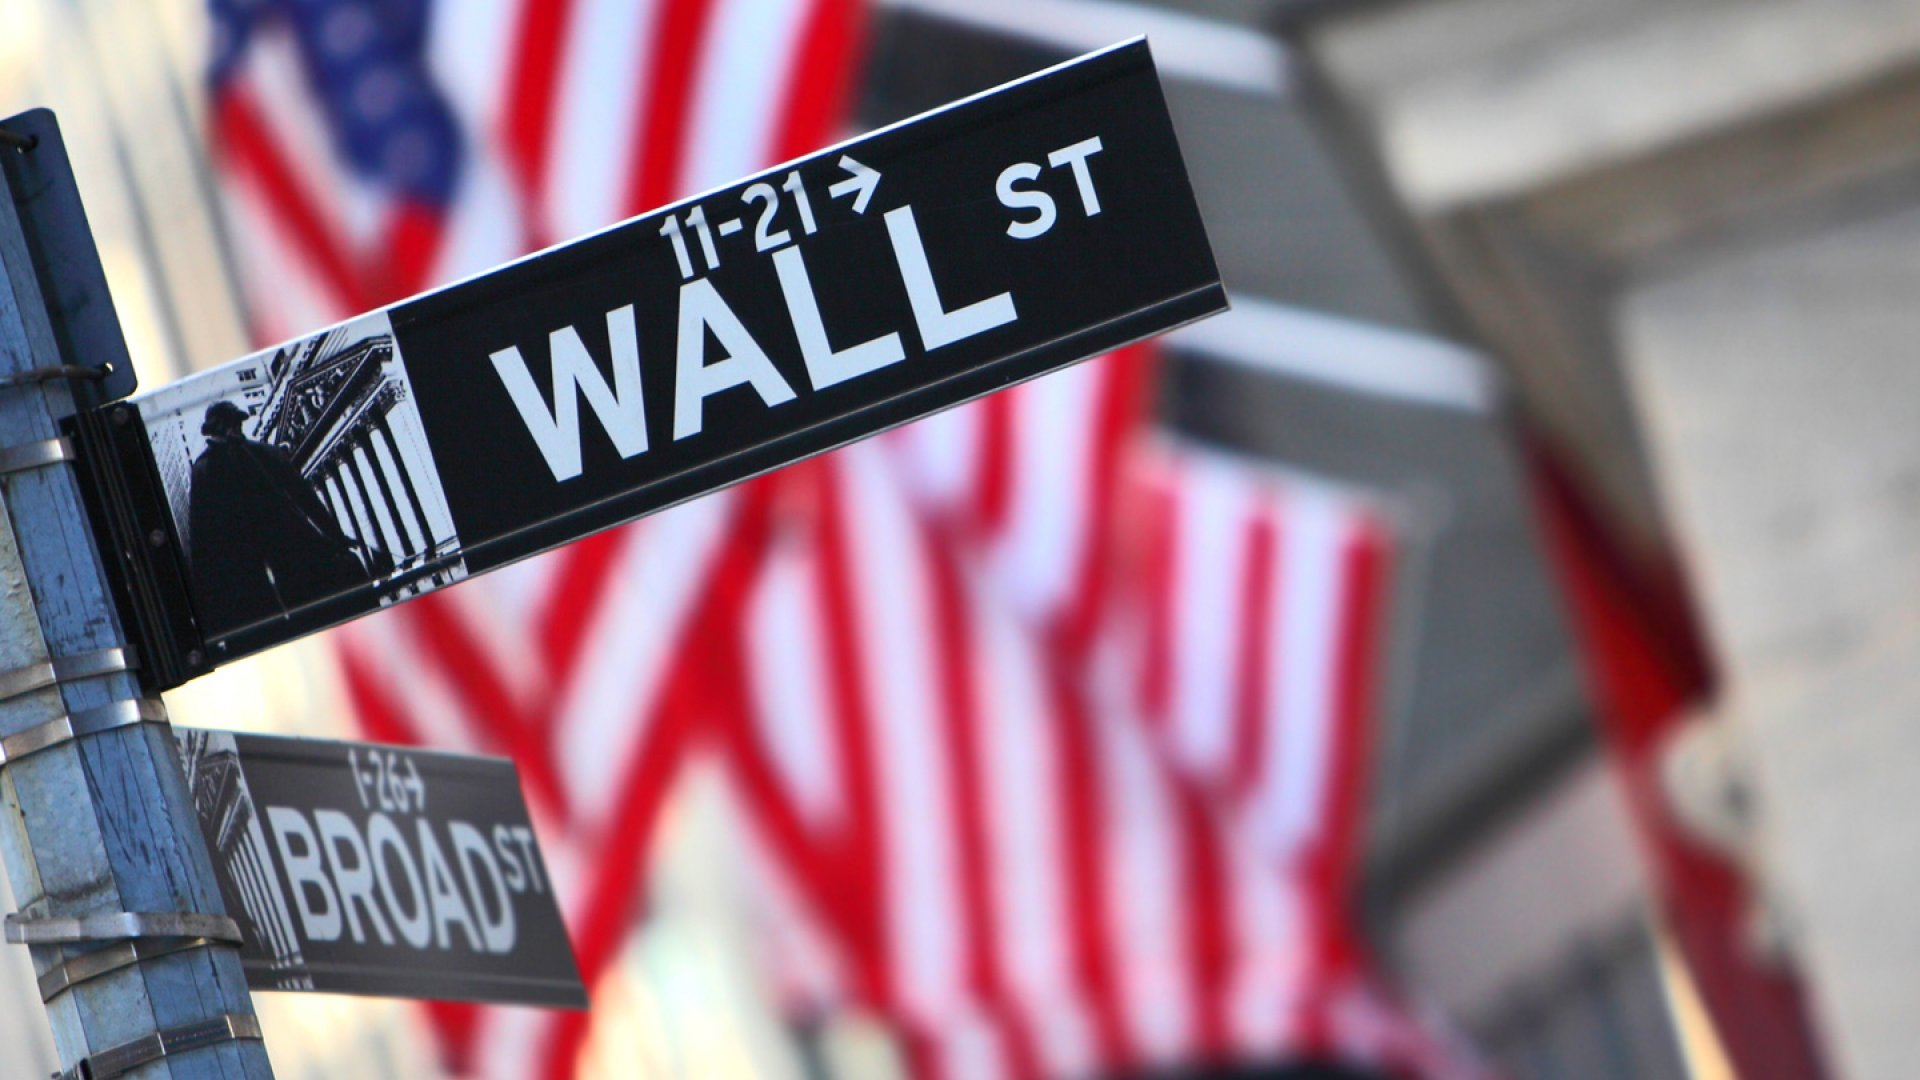 4 Reasons to Never Trust the Stock Market